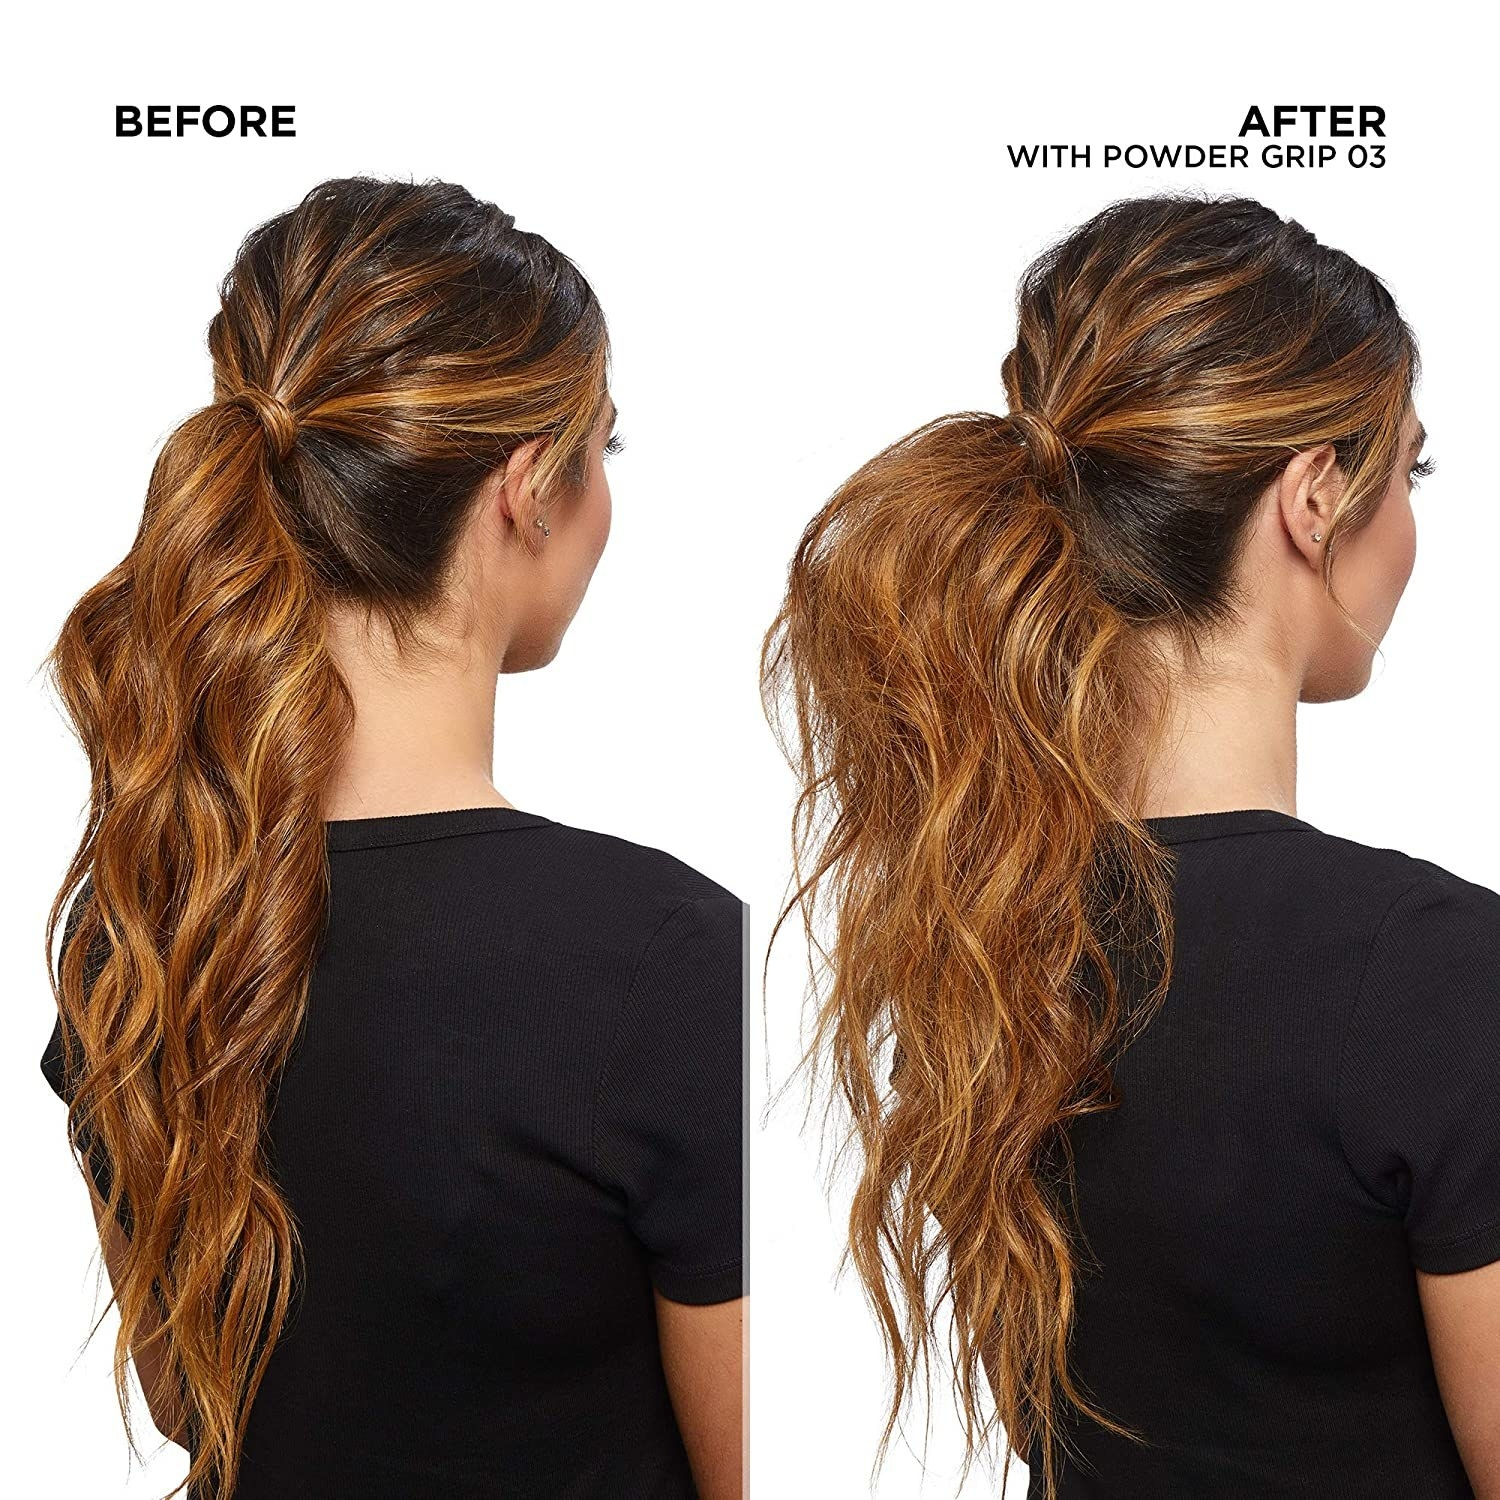 A model before, with soft-textured styled curls, and after, where they curls are separated and have significantly more volume